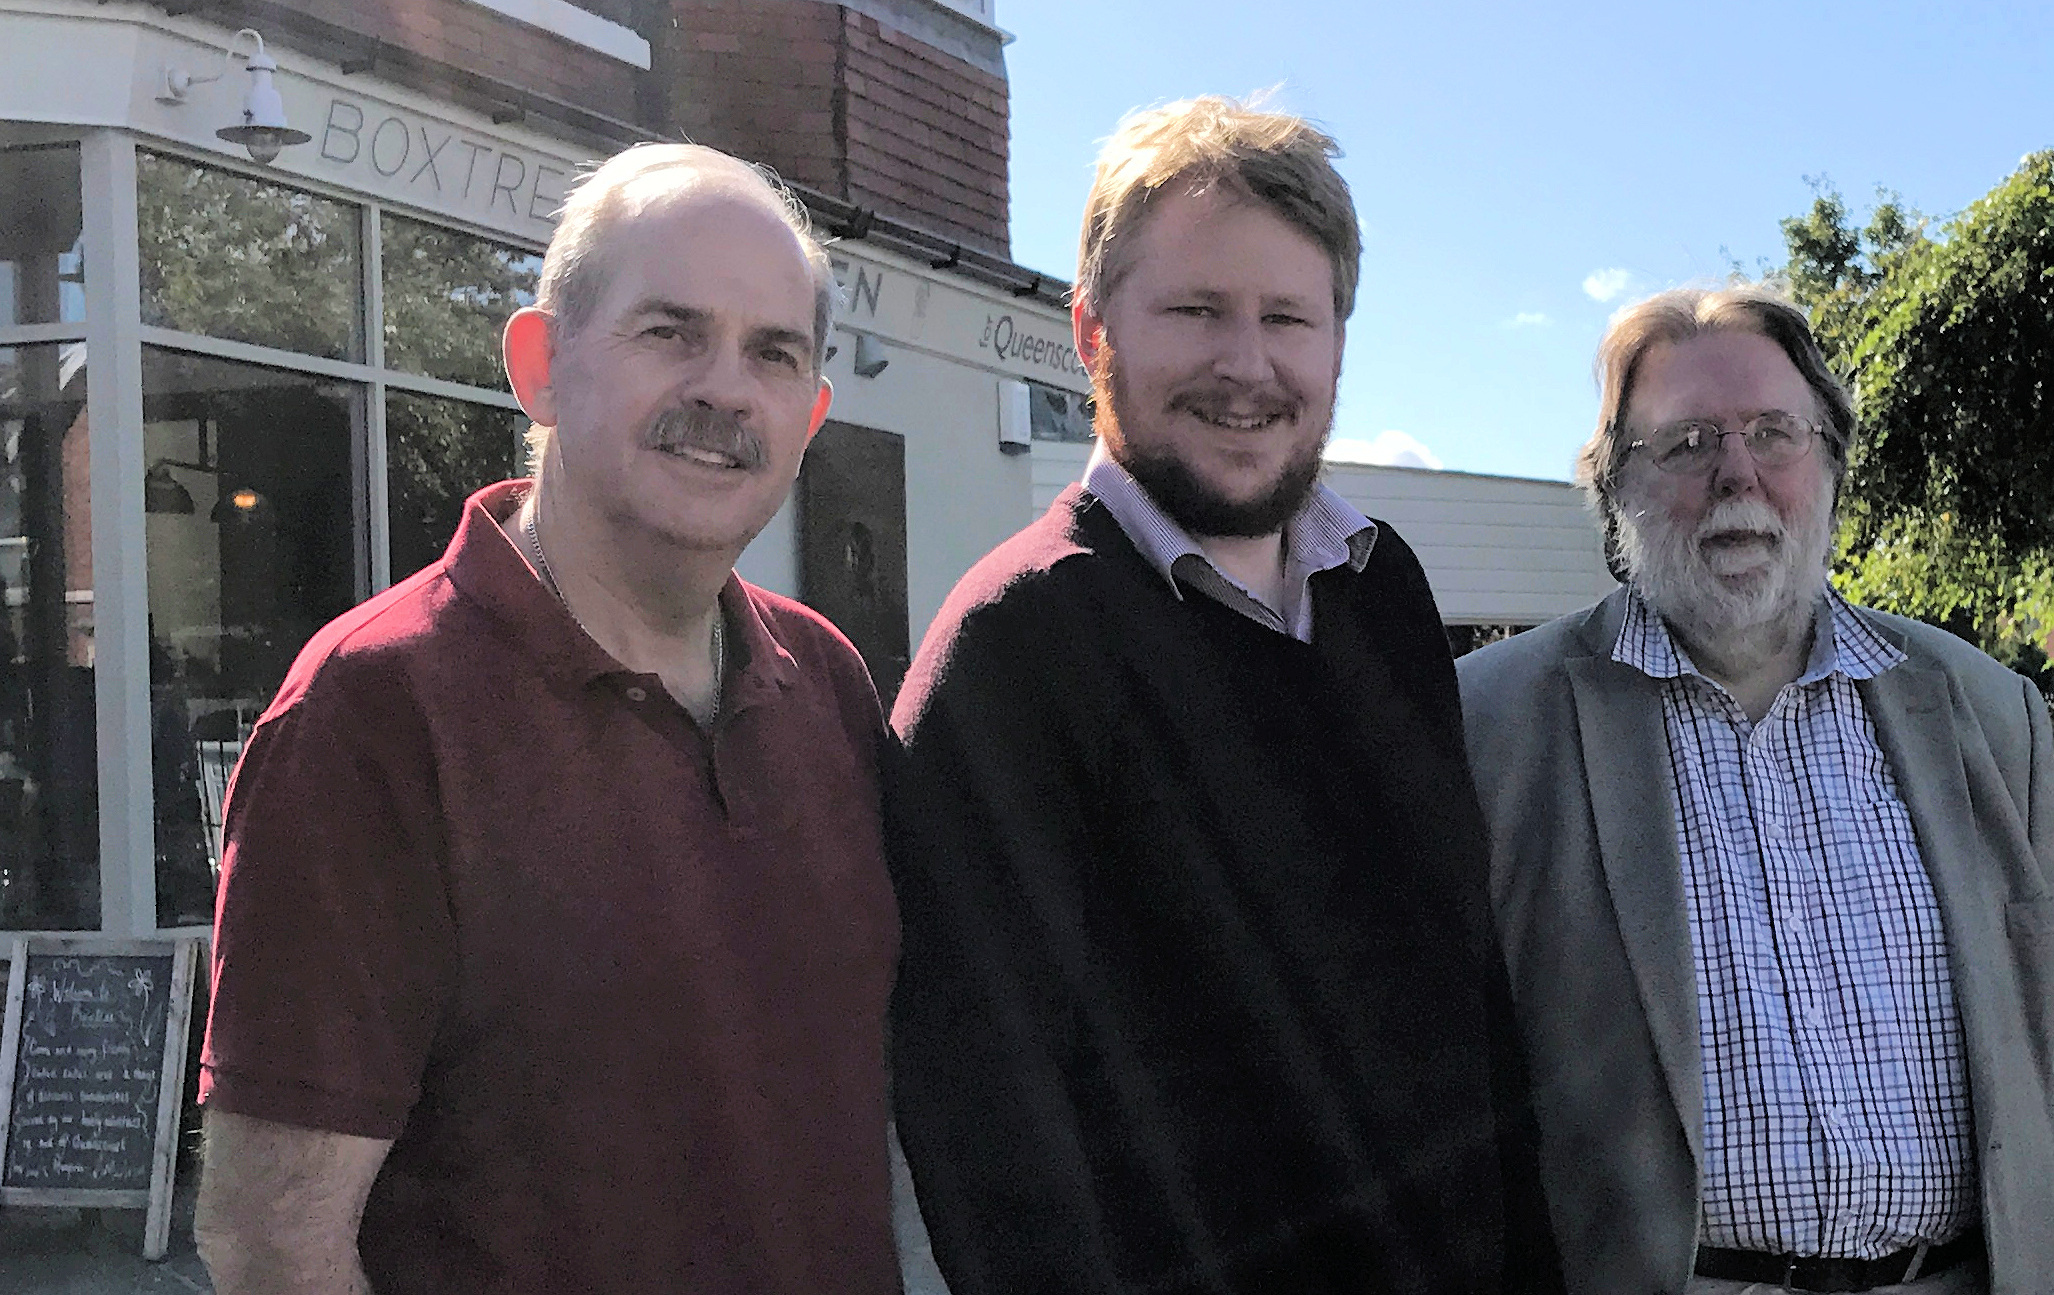 Councillors John Dodd, Daniel Lewis and Nigel Ashton and will be holding their next Advice Centre on Thursday 22nd February.    They will be available from 10.30am-11.30am at BoxTree Kitchen for Queenscourt café, Manor Road/Cambridge Road roundabout to assist residents with any local issues,...